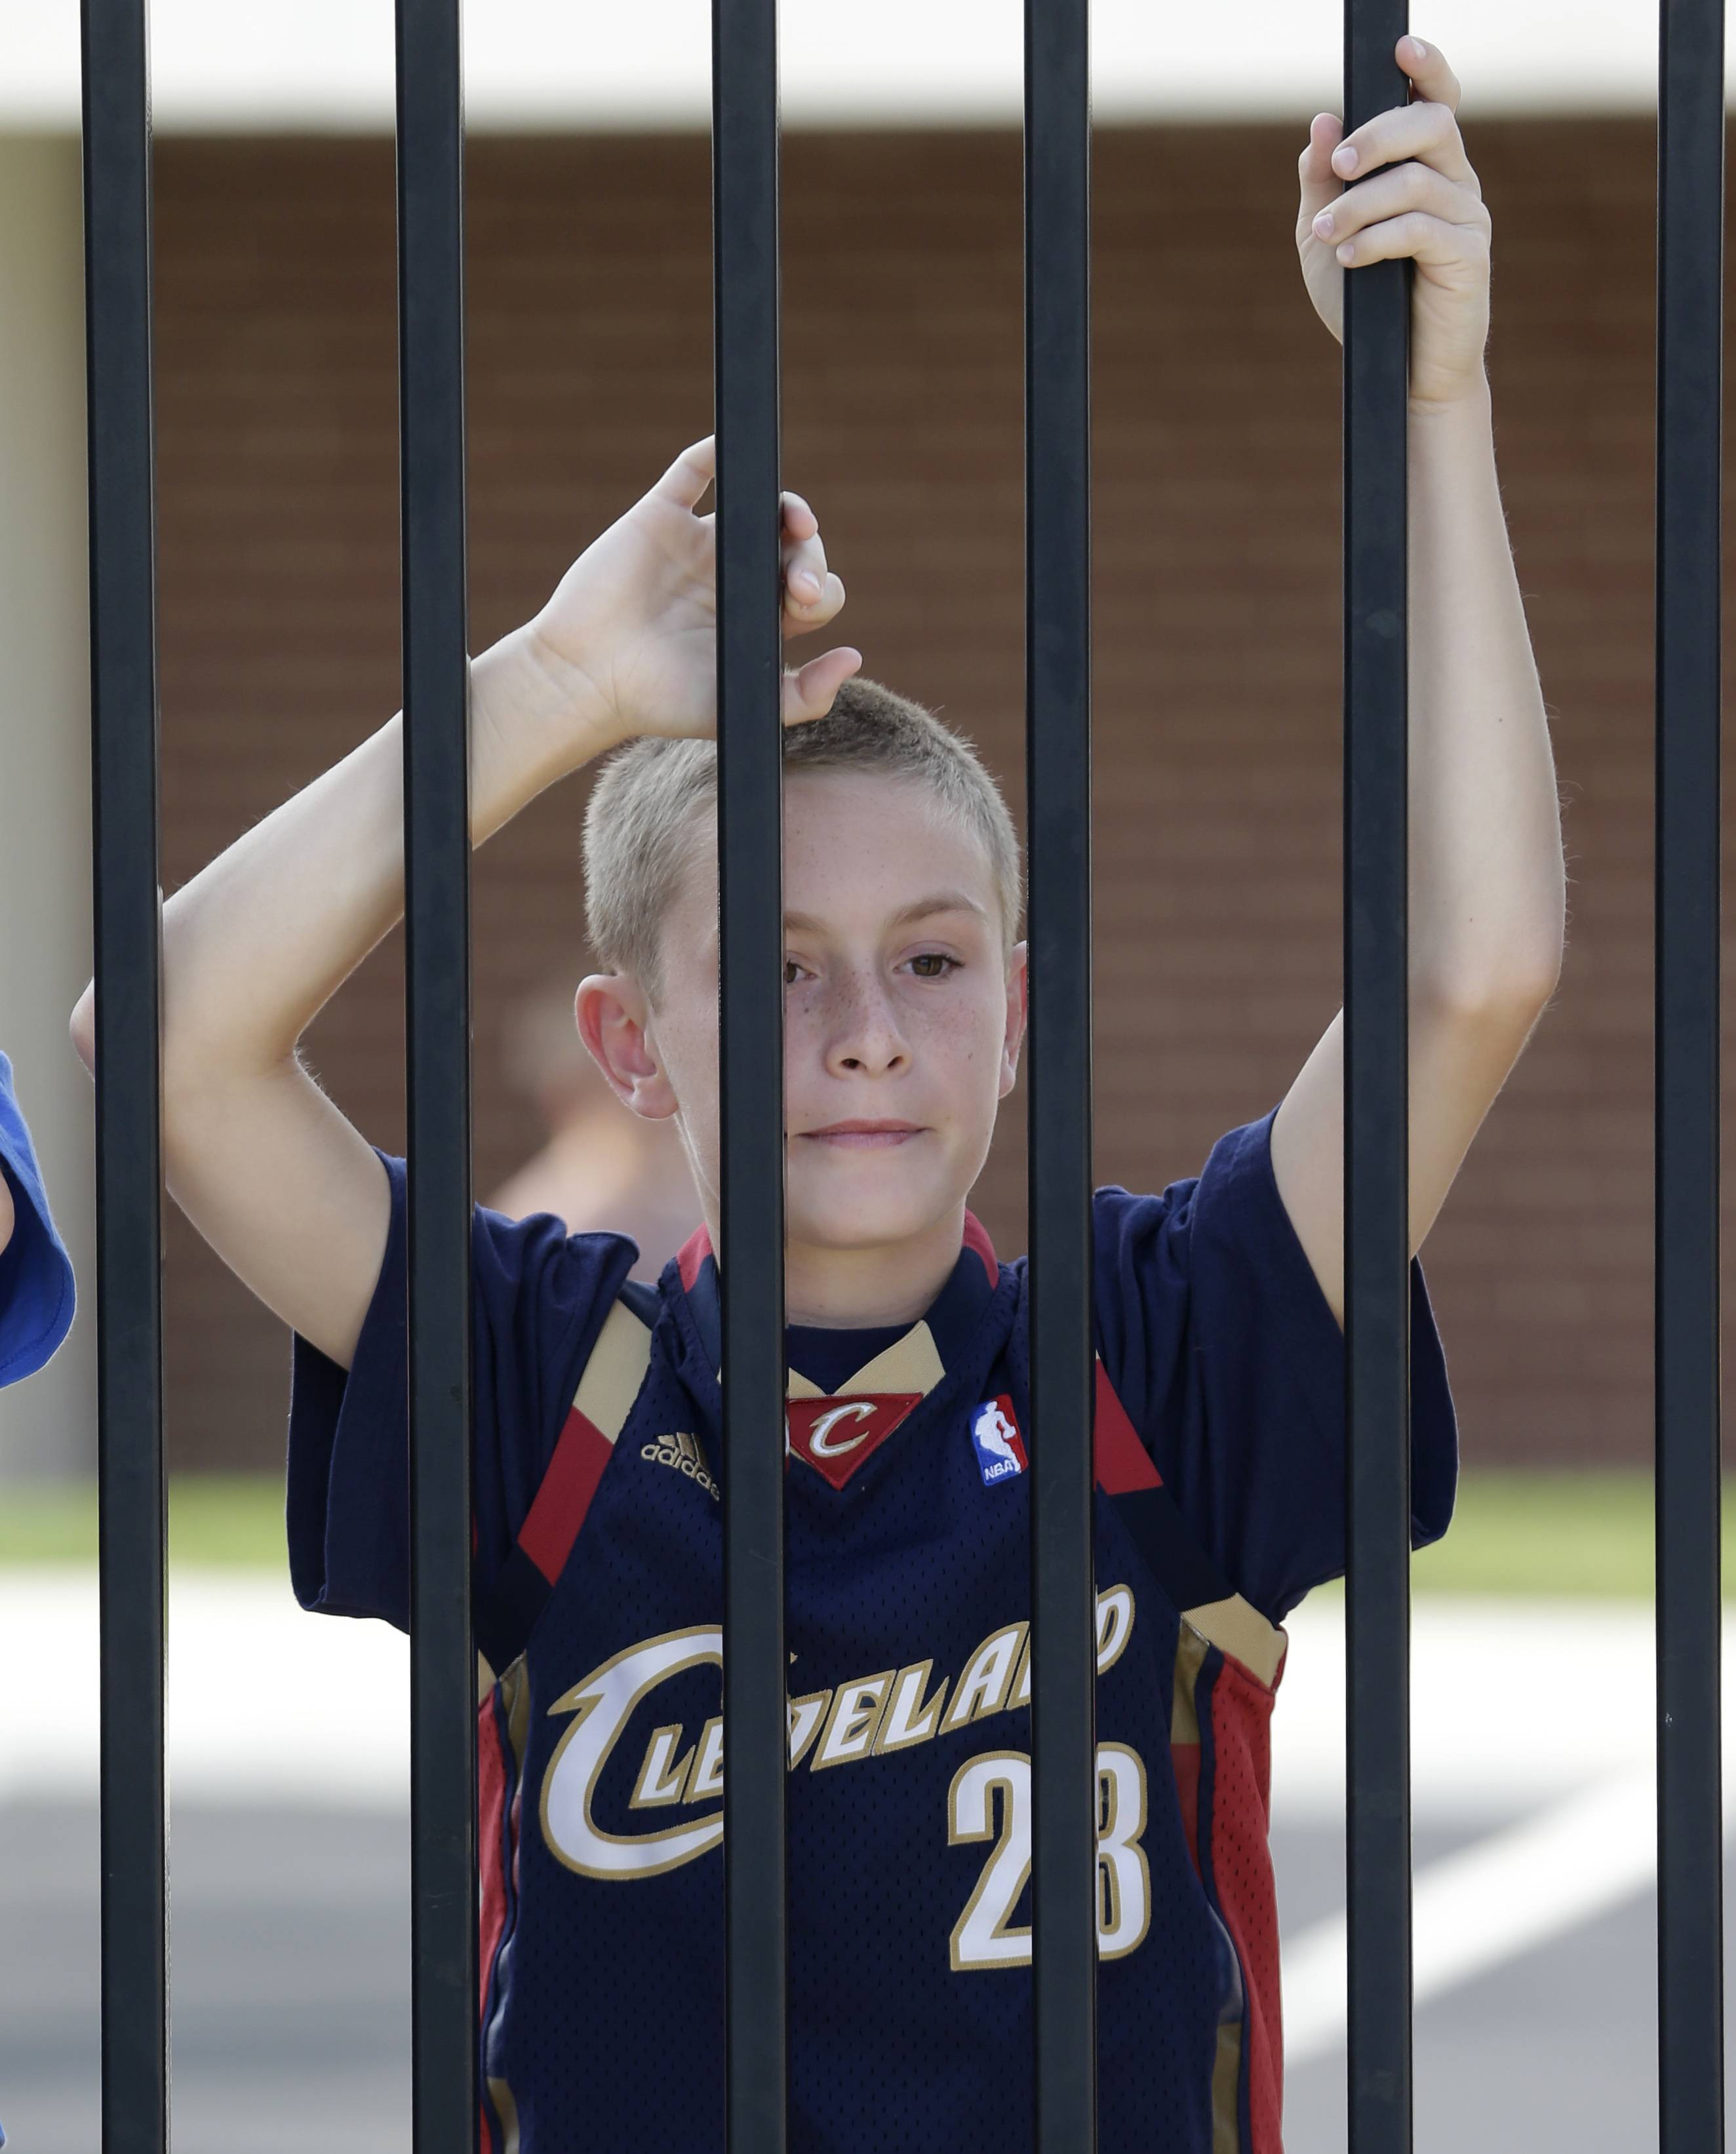 Kolten Kurtz, 11, looks into the stadium before the LeBron James homecoming Friday, Aug. 8, 2014, in Akron, Ohio. James is being welcomed back Friday night by the city where he first bounced a basketball. The NBA superstar is being celebrated with an event expected to draw more than 25,000 people to InfoCision Stadium. James grew up in Akron and has maintained a strong connection with his hometown.